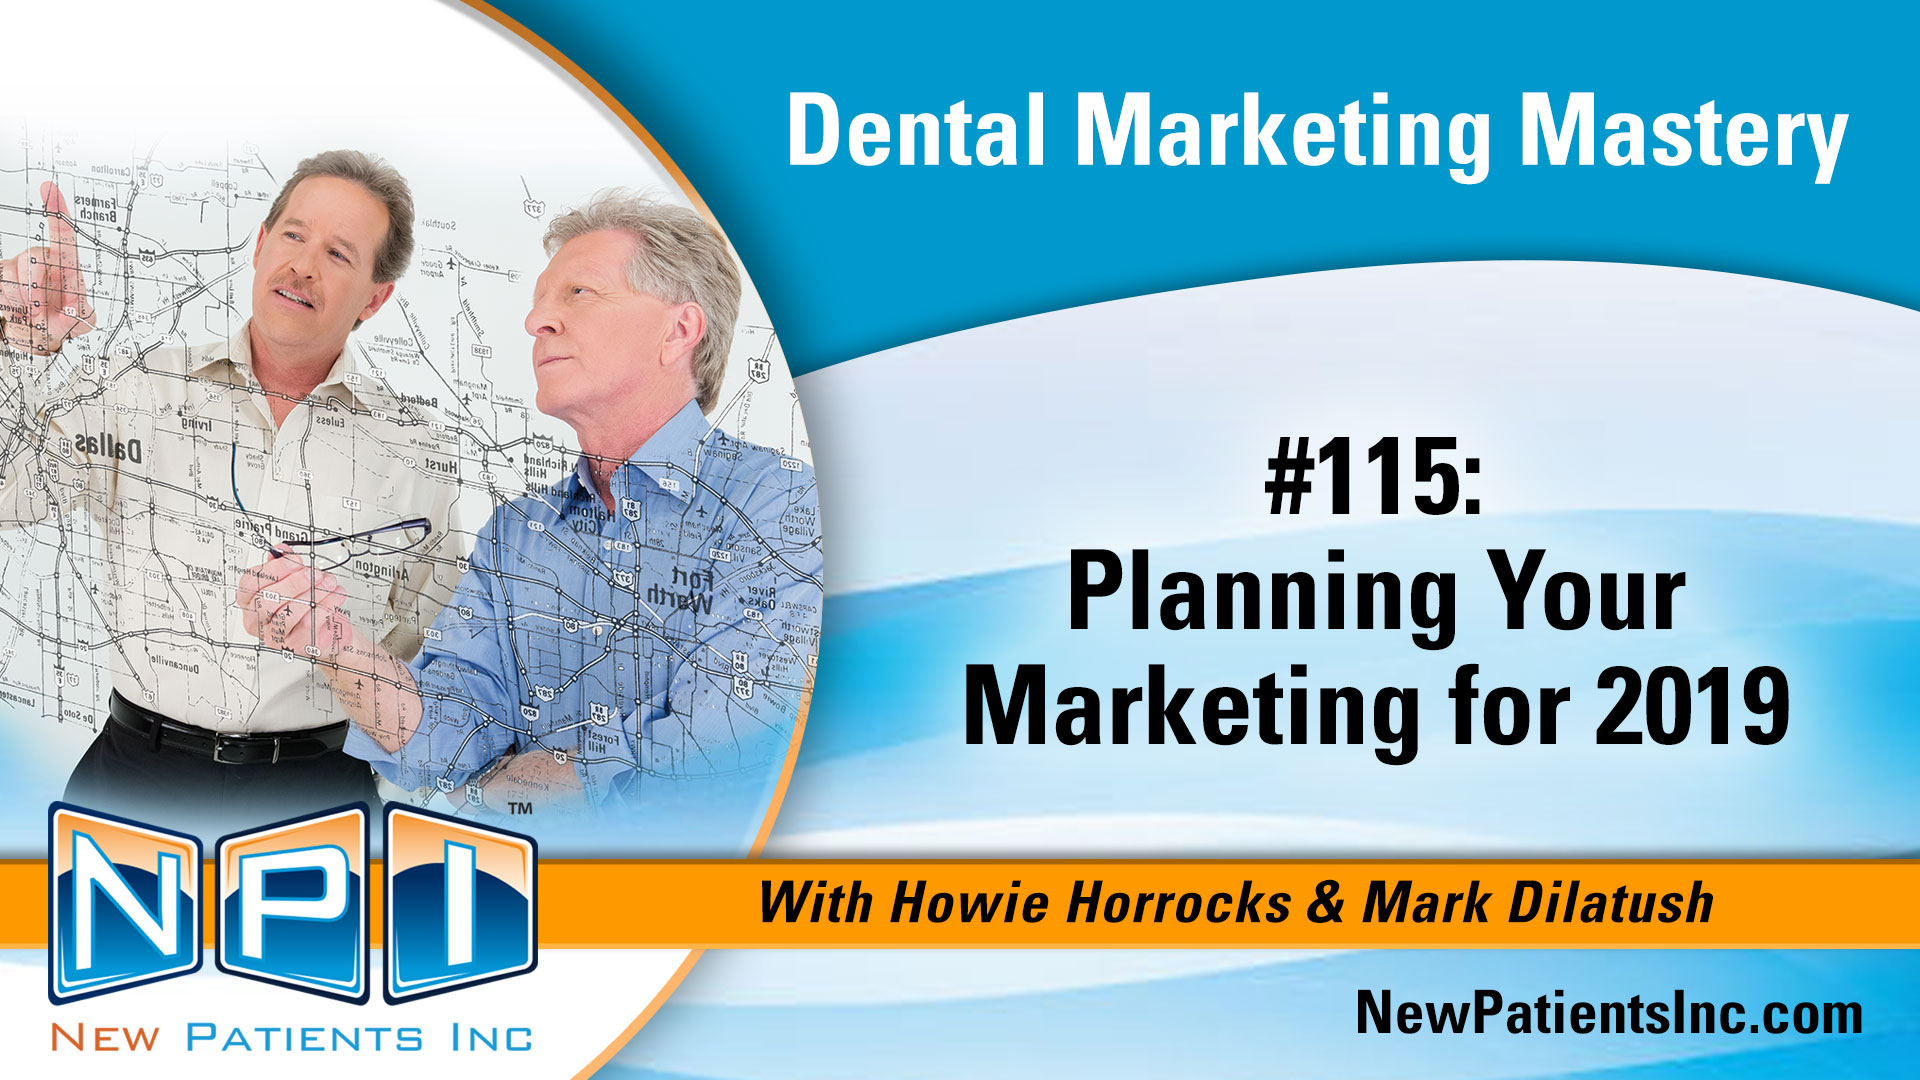 How to Create A Marketing Plan for Dental Practice for 2019